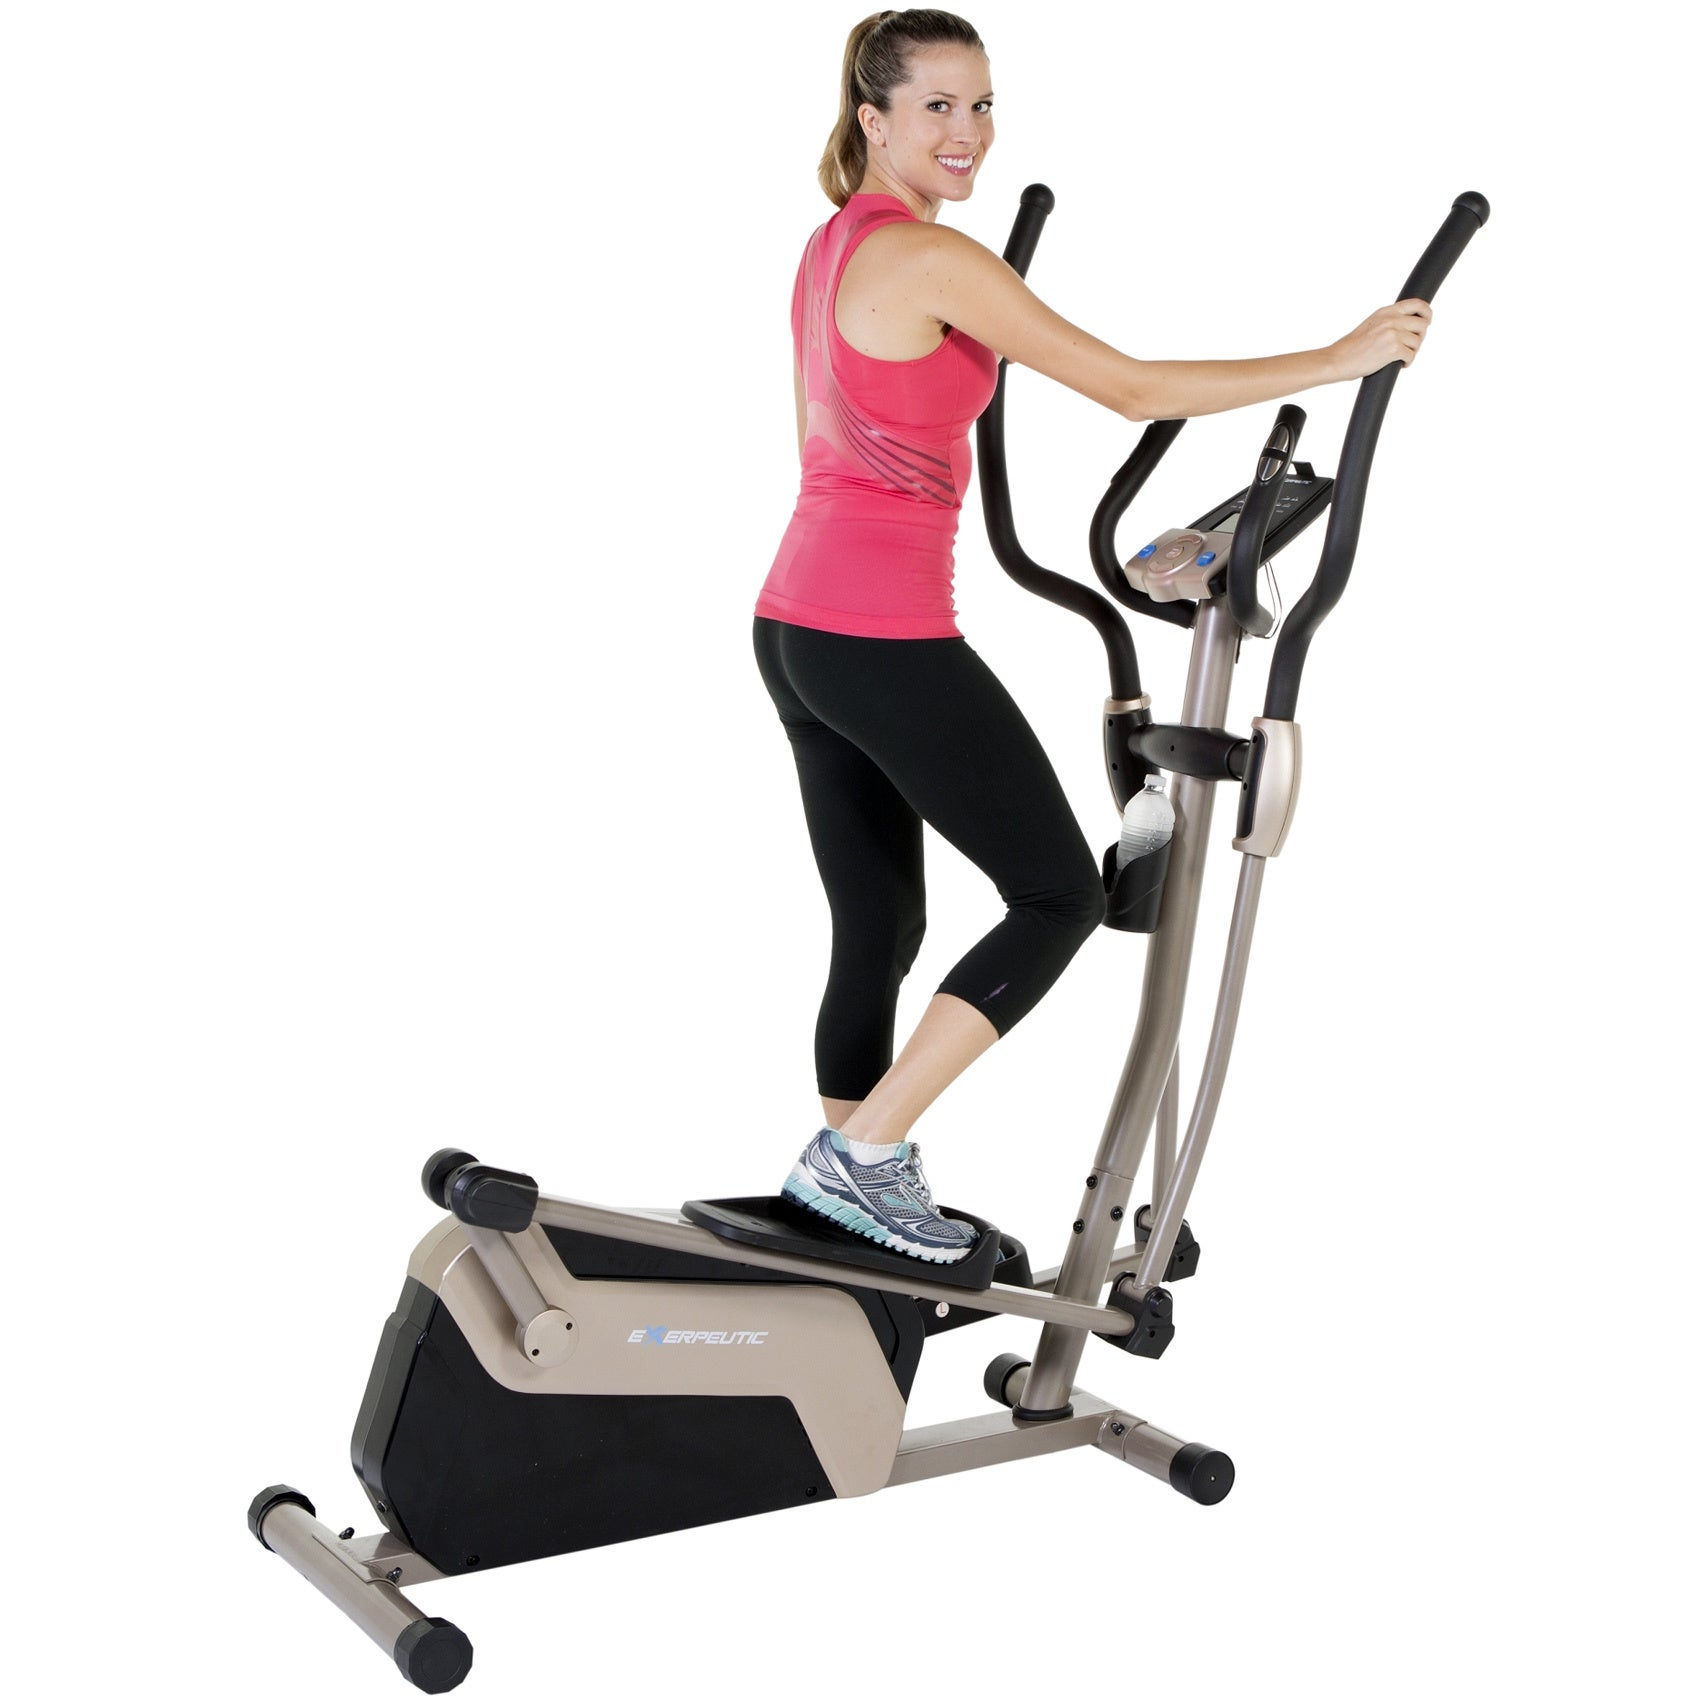 Exerpeutic 5000 Magnetic Elliptical with Double Transmiss...